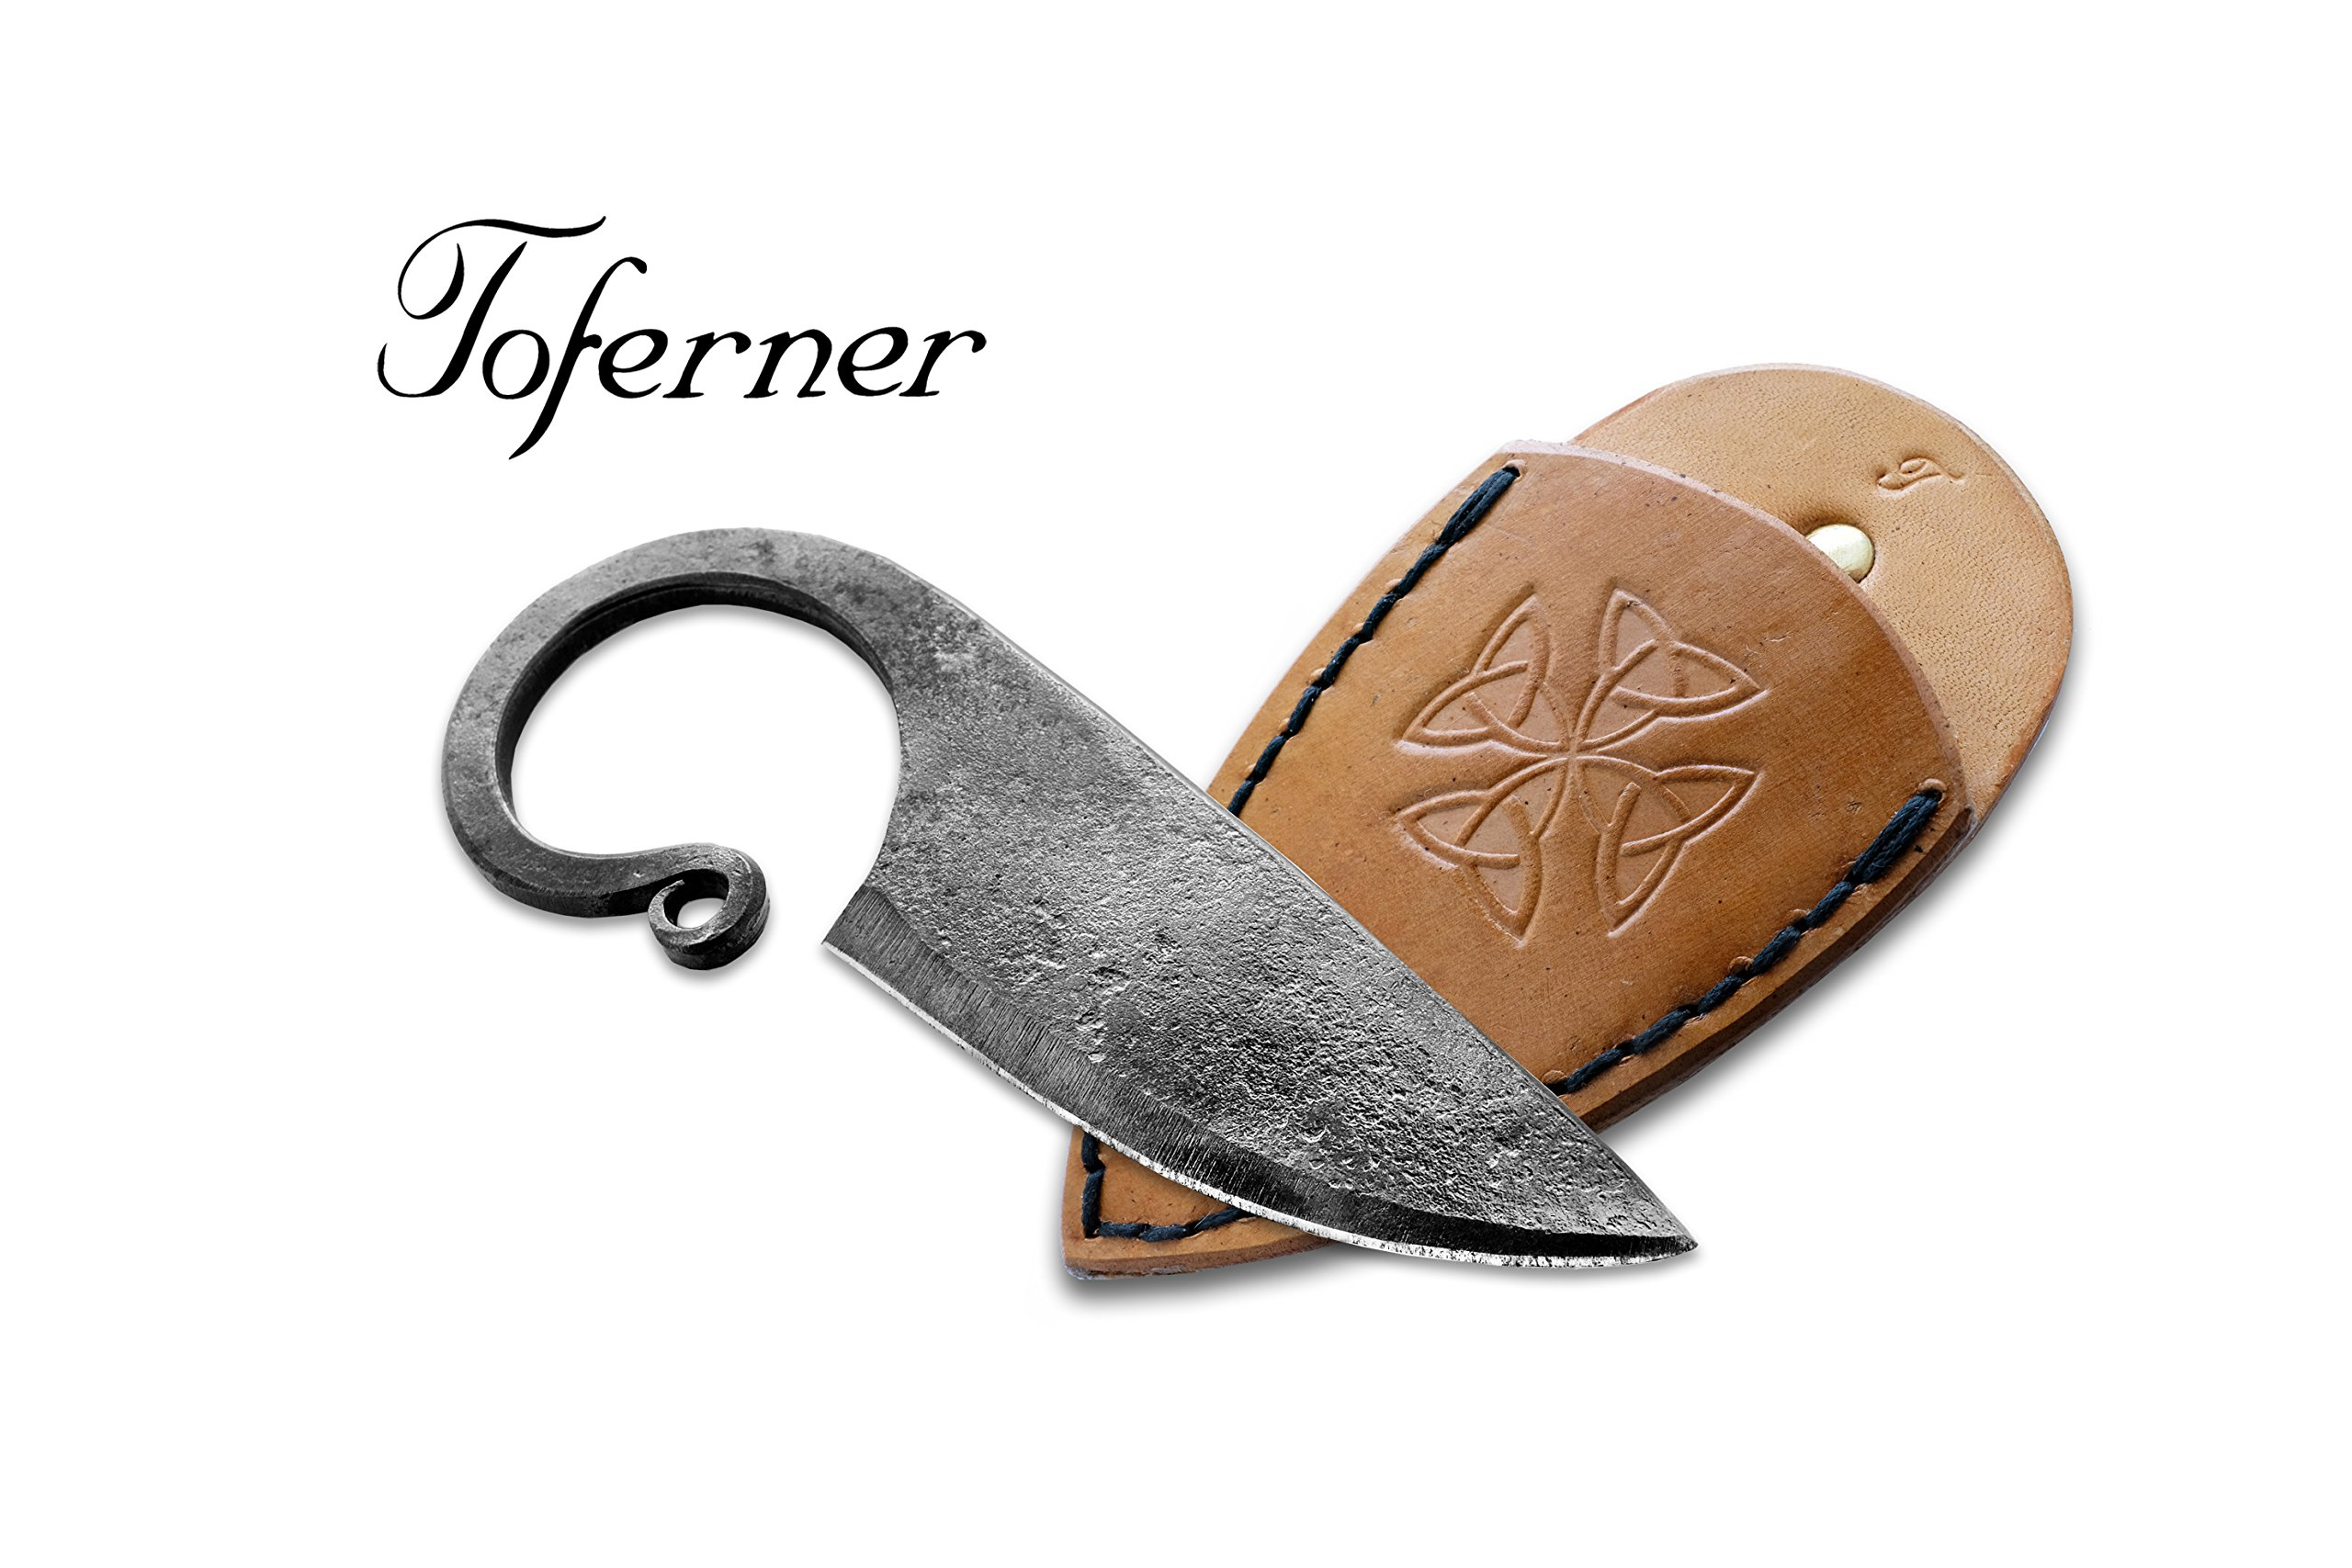 Toferner Original Gift, Beautiful Product - Celtic Pocket Knife On a Belt, Hand Forged Knife.Hardened Blade, Vintage, Art Collection, Antiquity, Great.Beautiful Product.